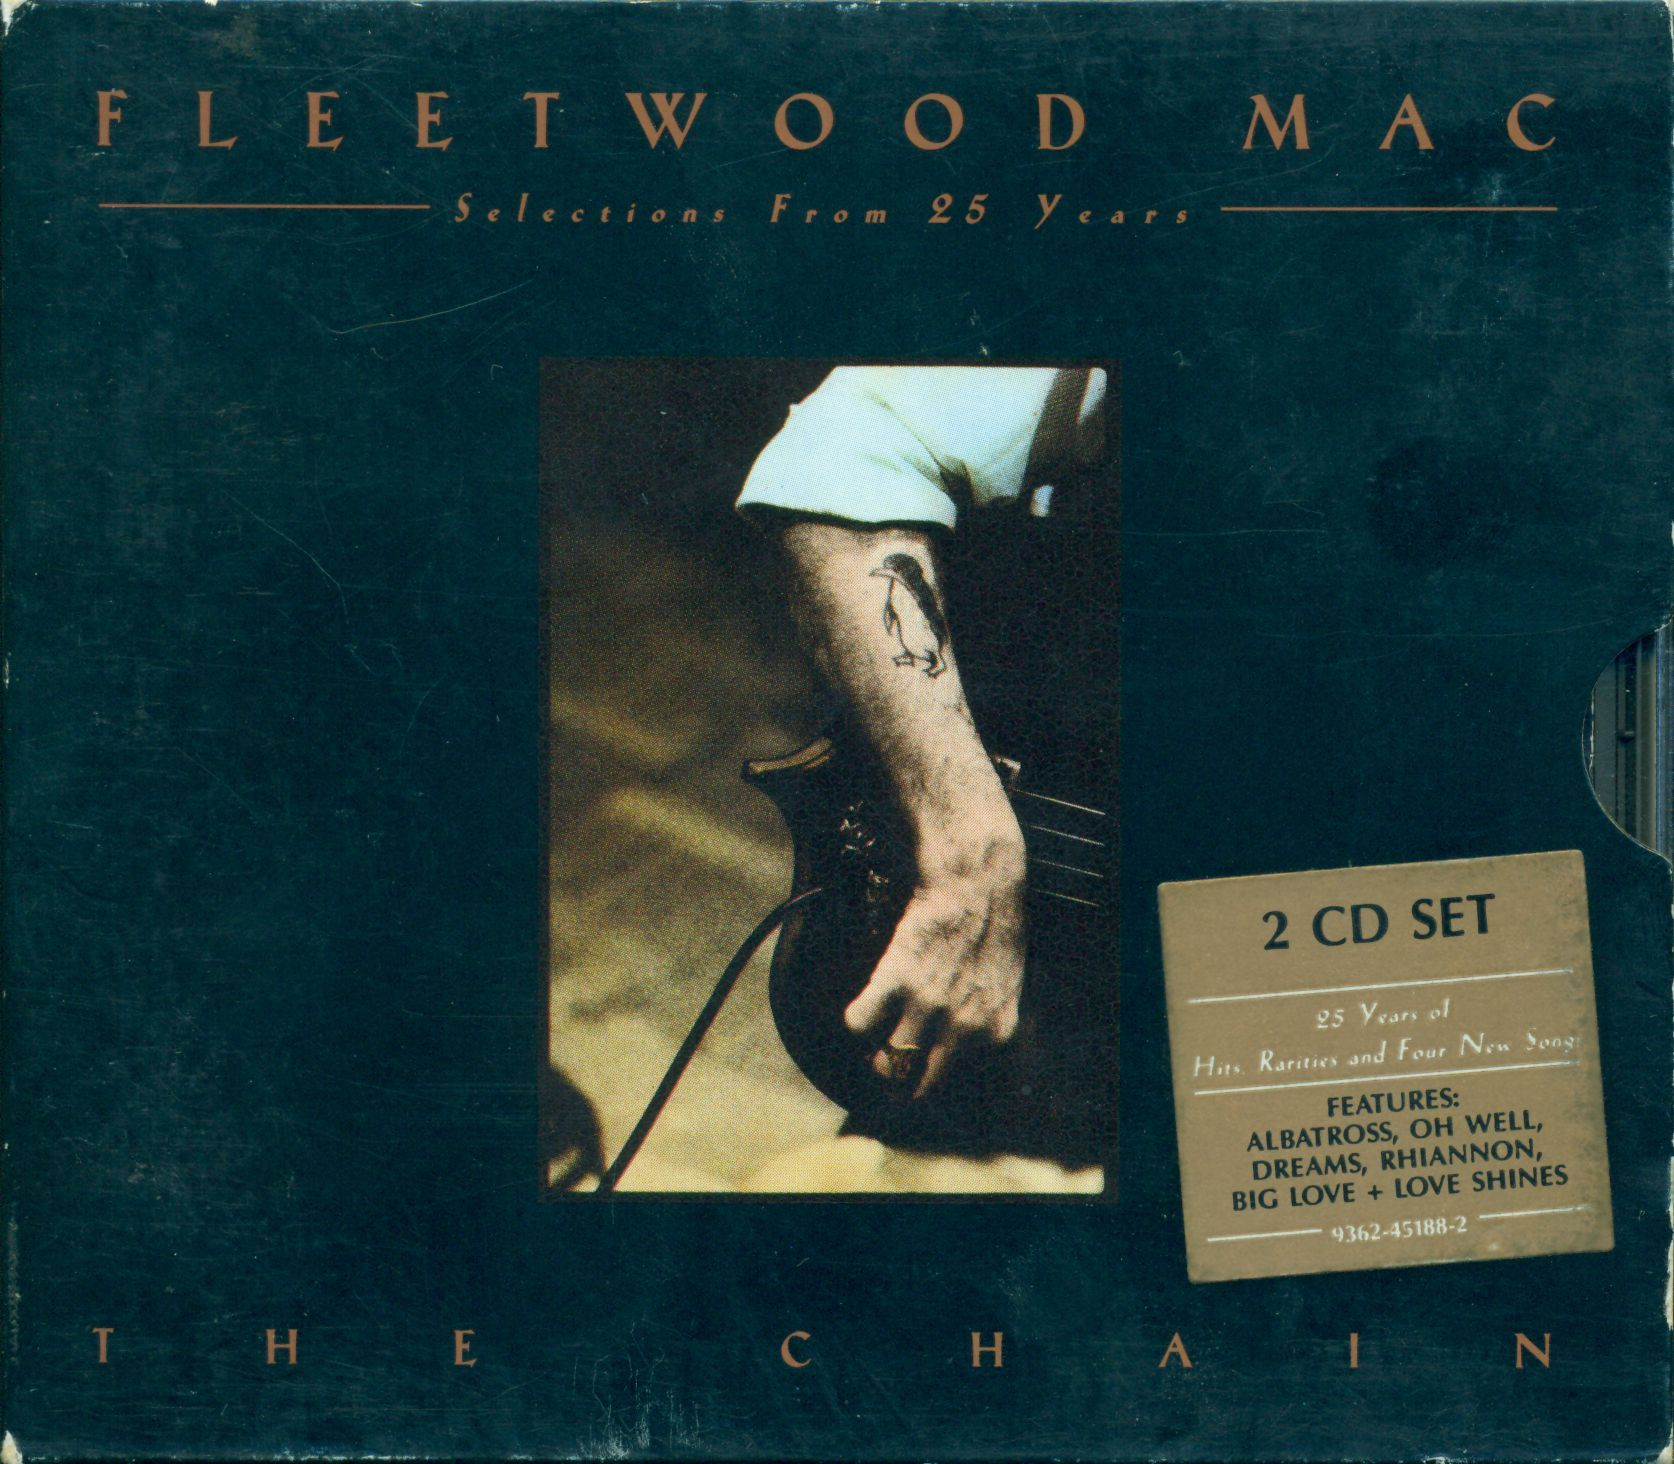 Fleetwood Mac - 25 Years - The Chain album cover